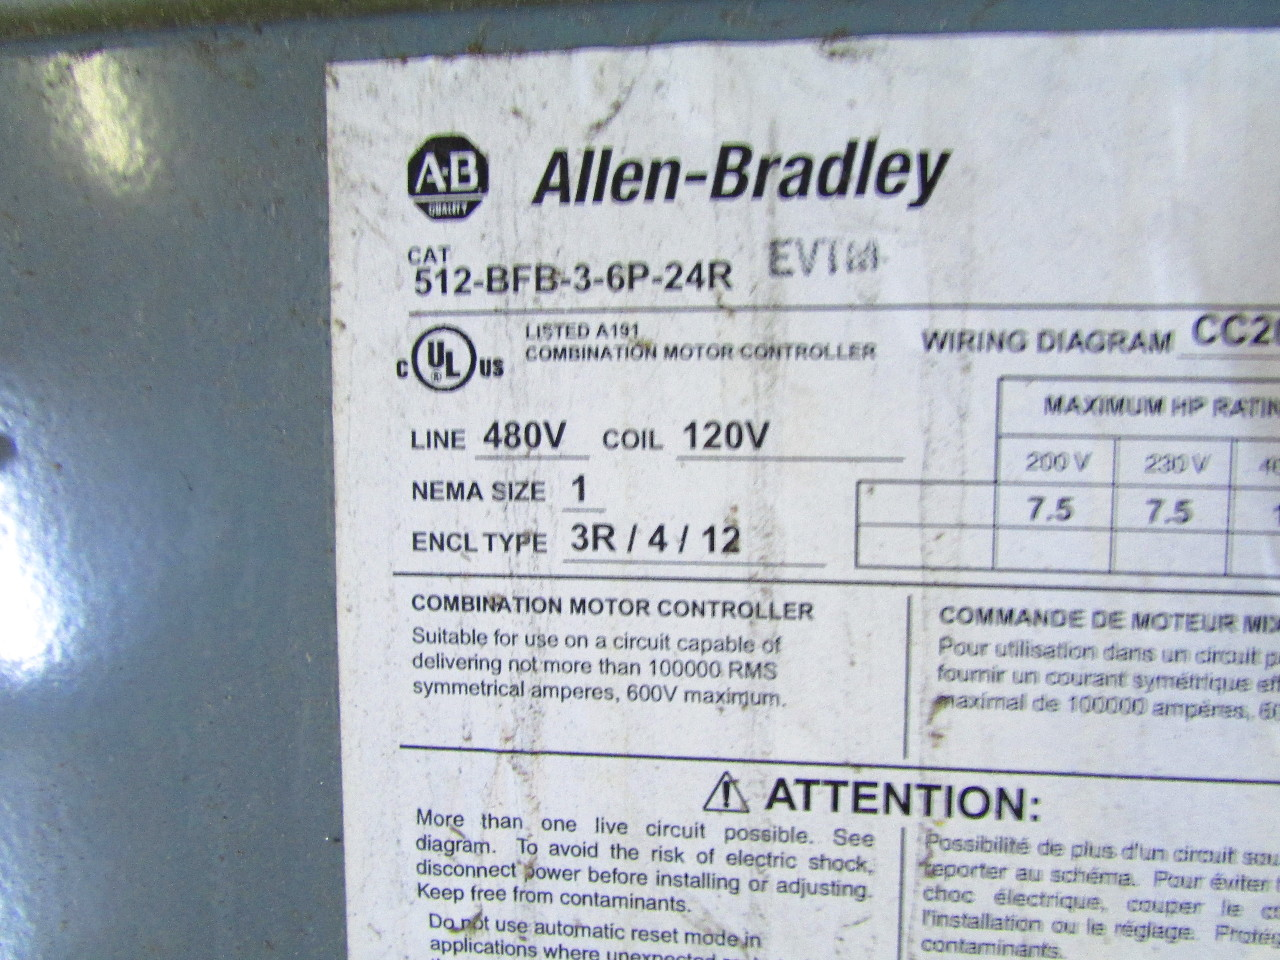 Emi Wiring Diagram 18 Images Diagrams Mini Split F750 Weick Sd07950 Allen Bradley 512 Bfb 3 6p 24r Nema Combination Starter Disconnect Type 1 480